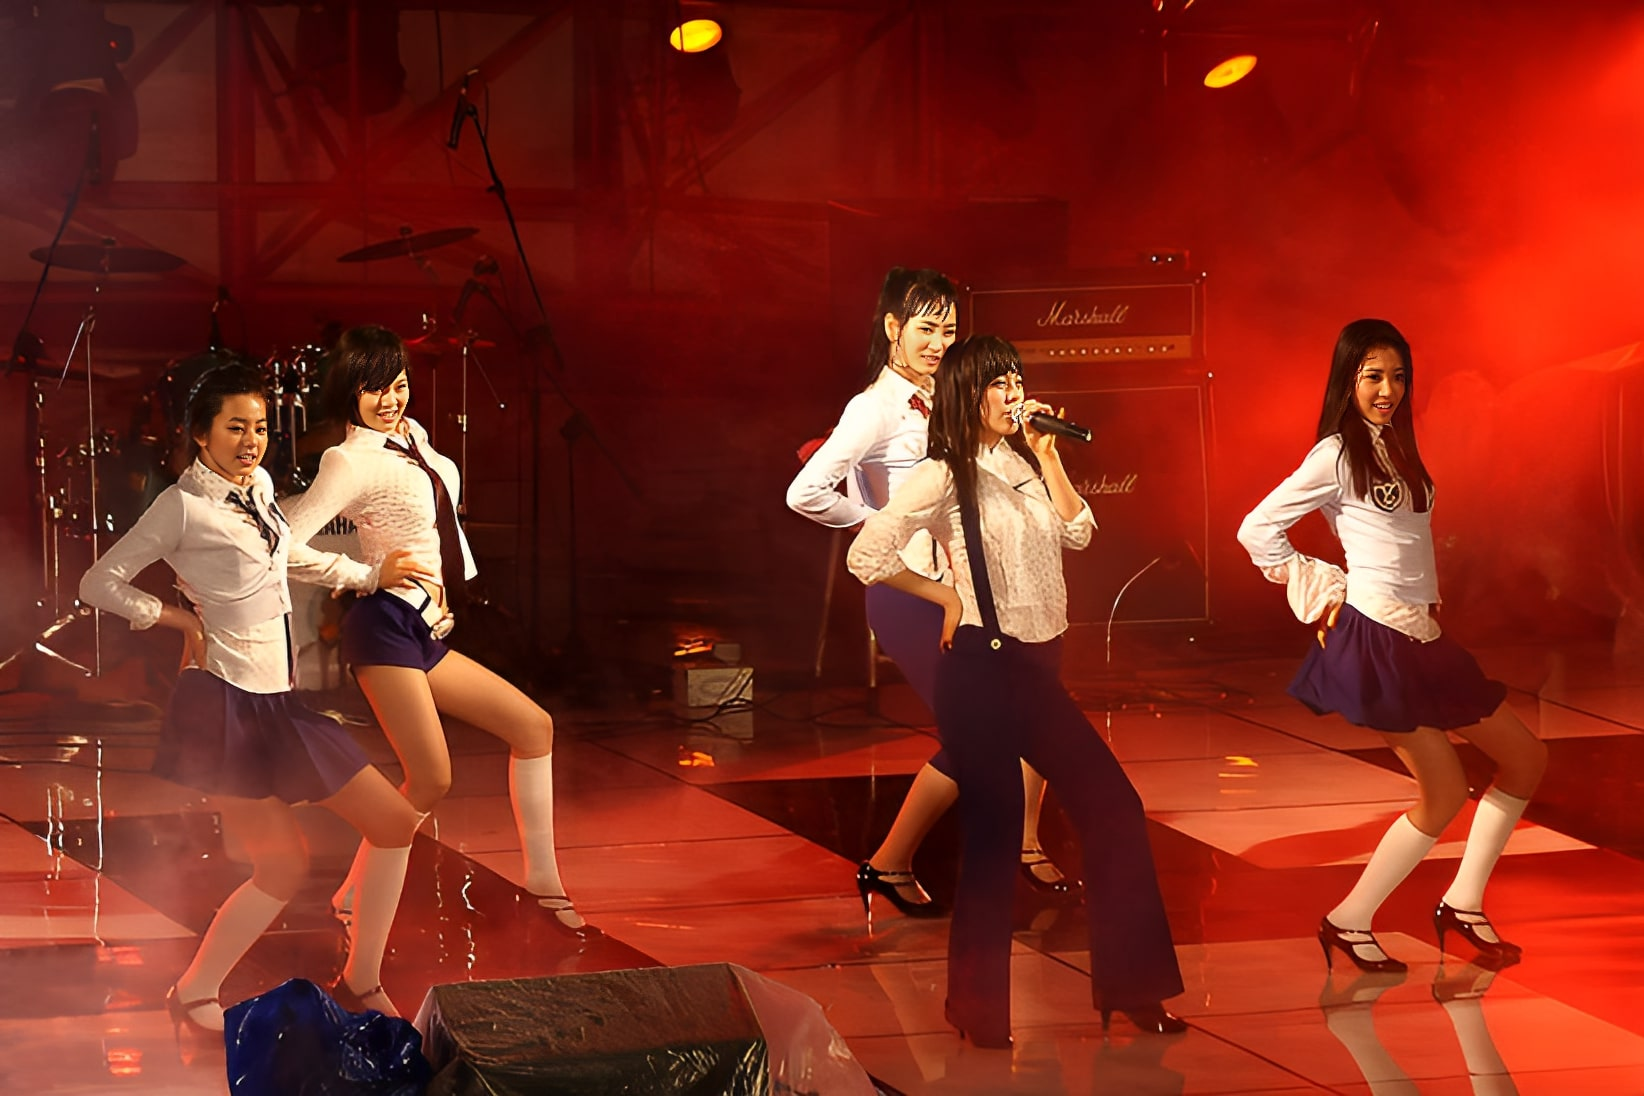 http://upload.wikimedia.org/wikipedia/commons/1/1a/Wonder_Girls-HanyangUniv_05R.jpg